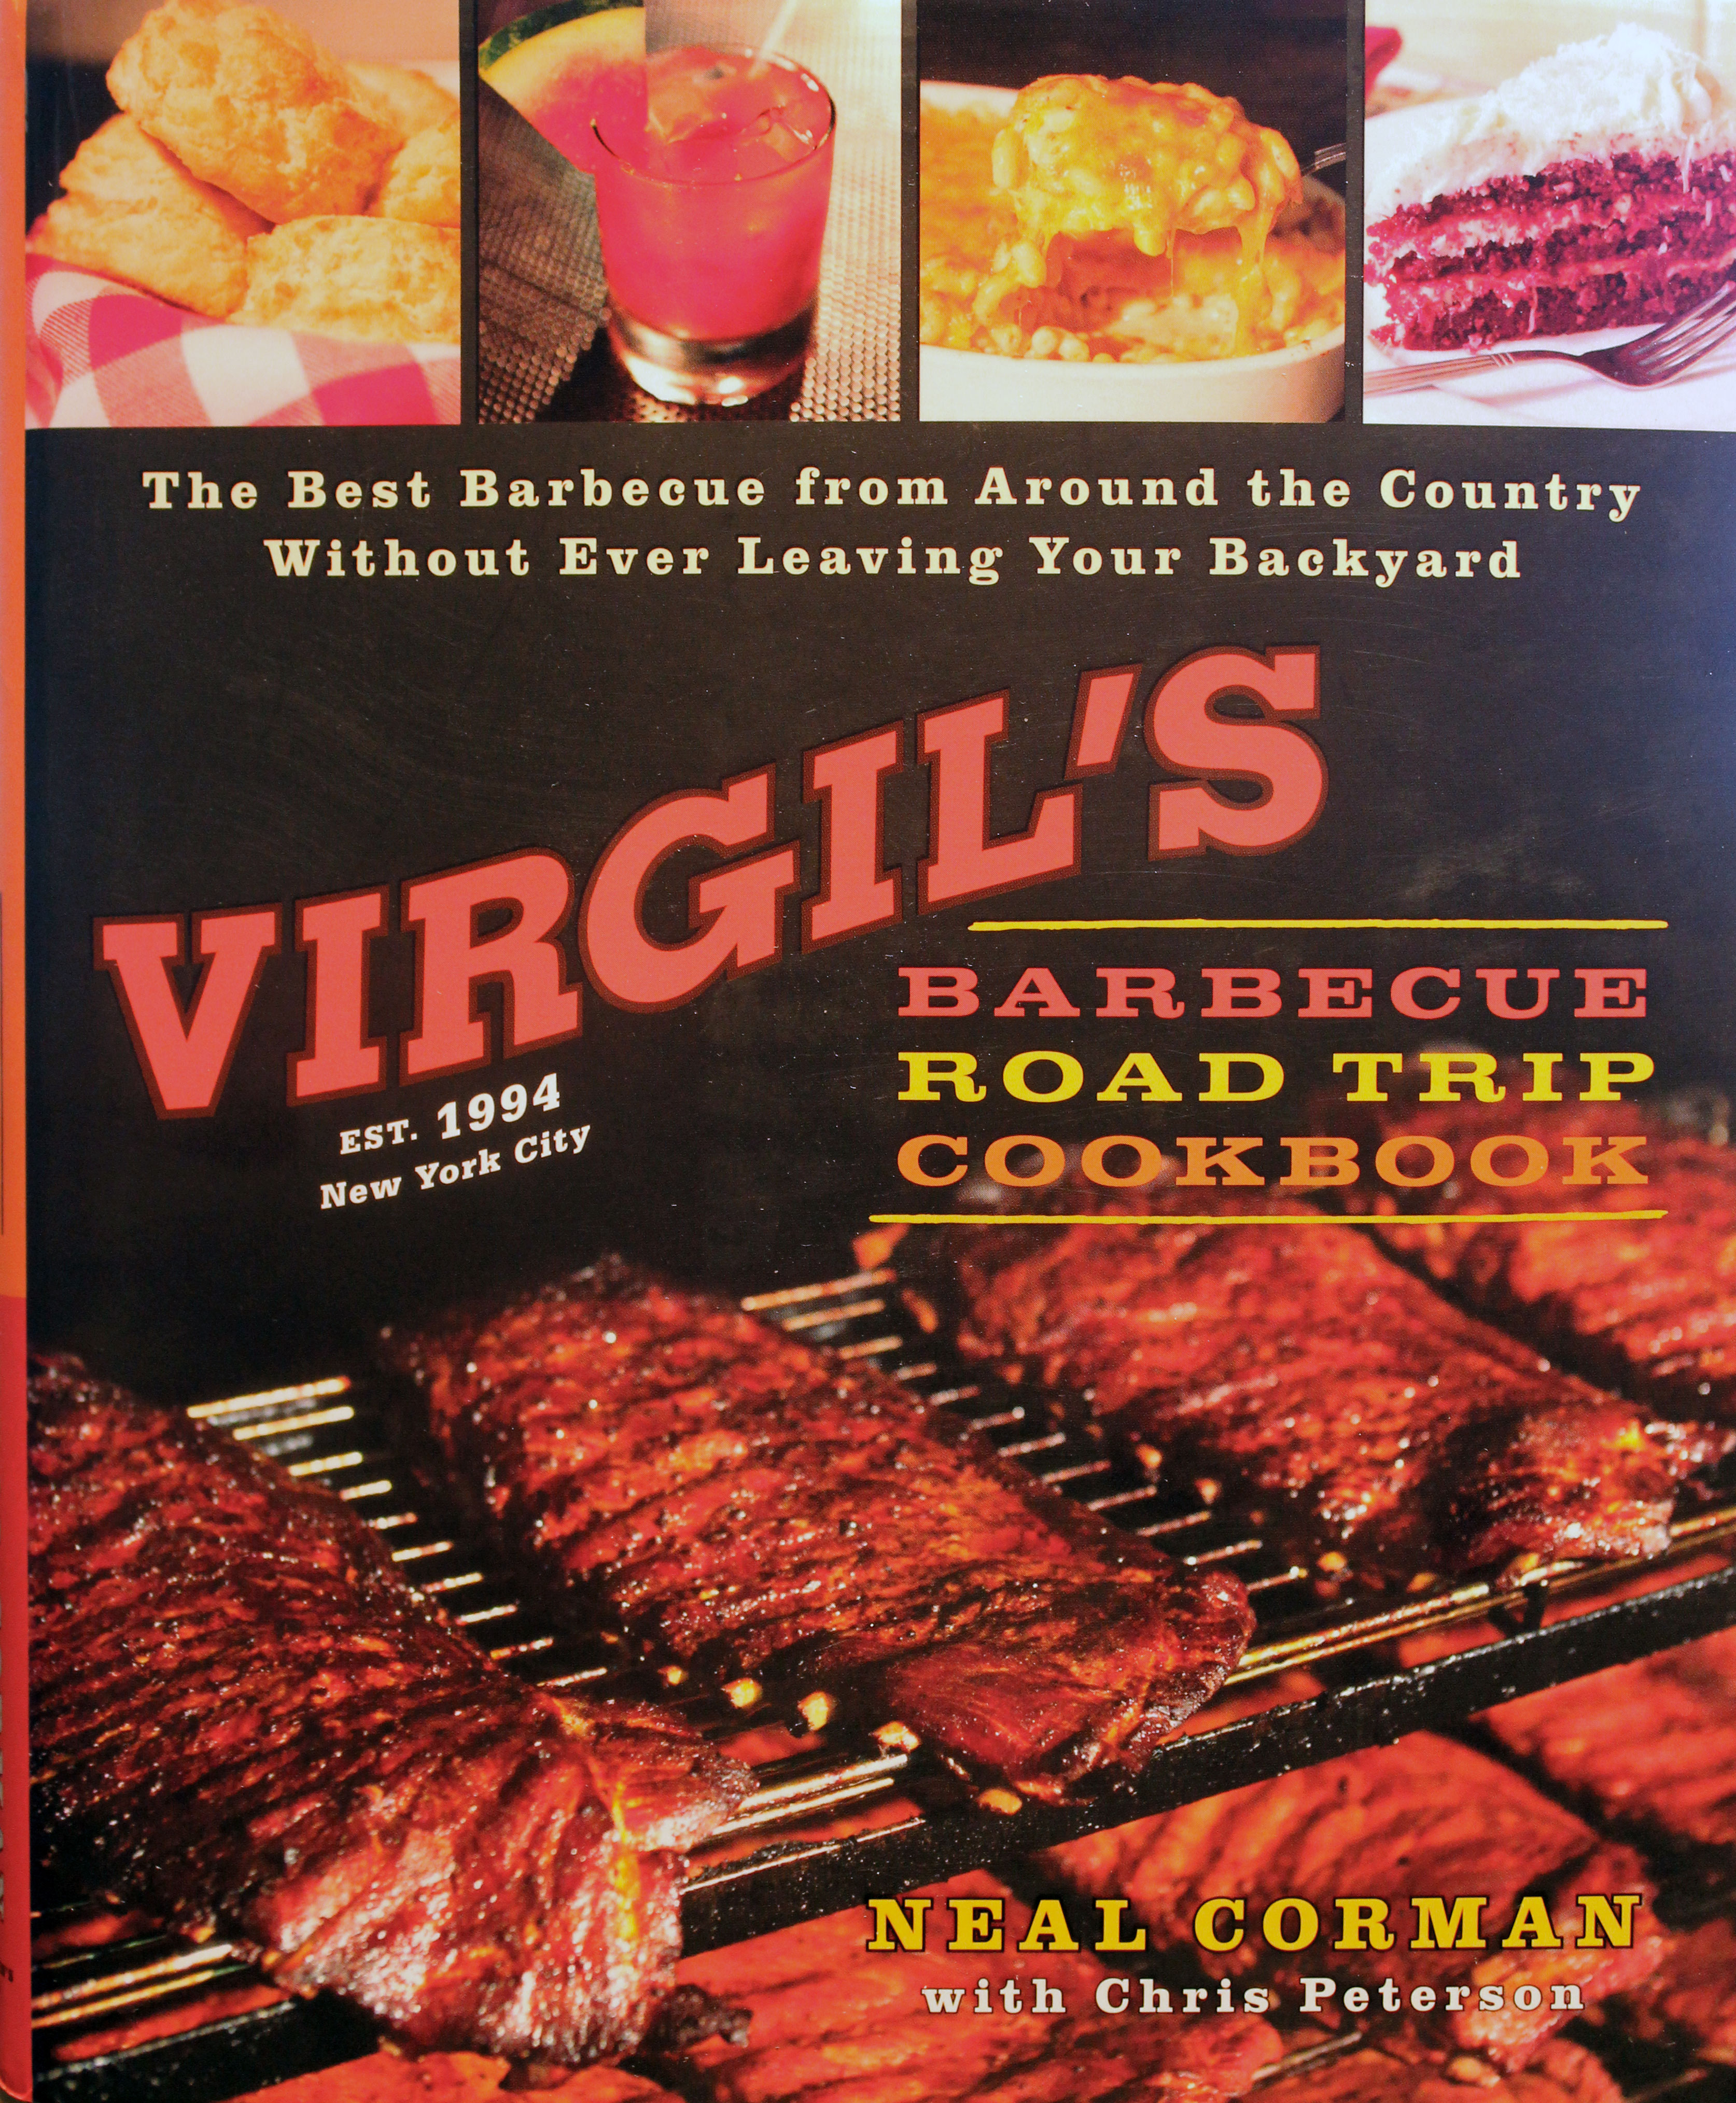 TBT Cookbook Review: Virgil's Barbecue Road Trip